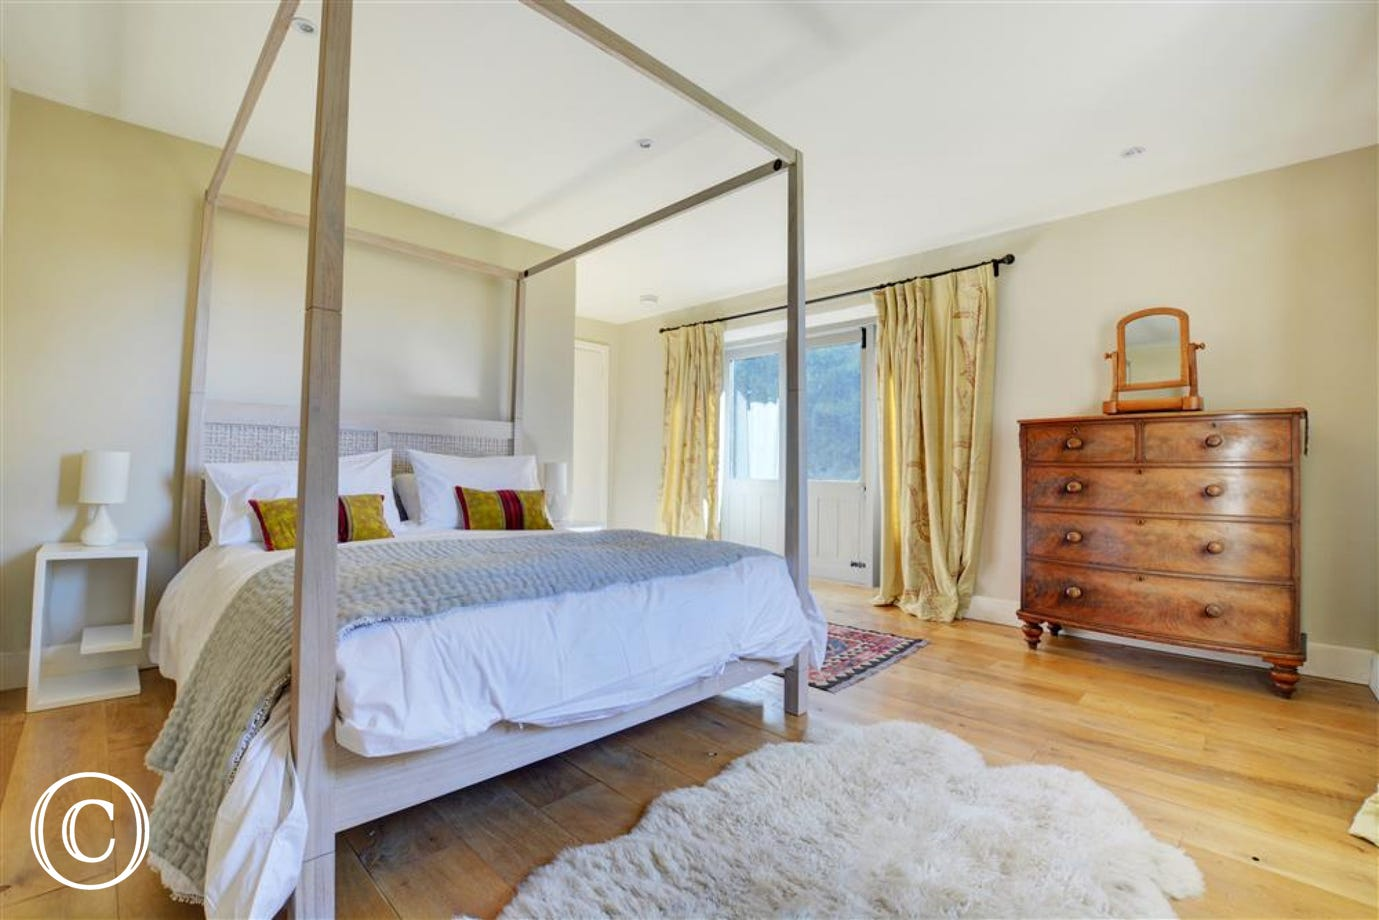 Main bedroom with king sized four poster bed